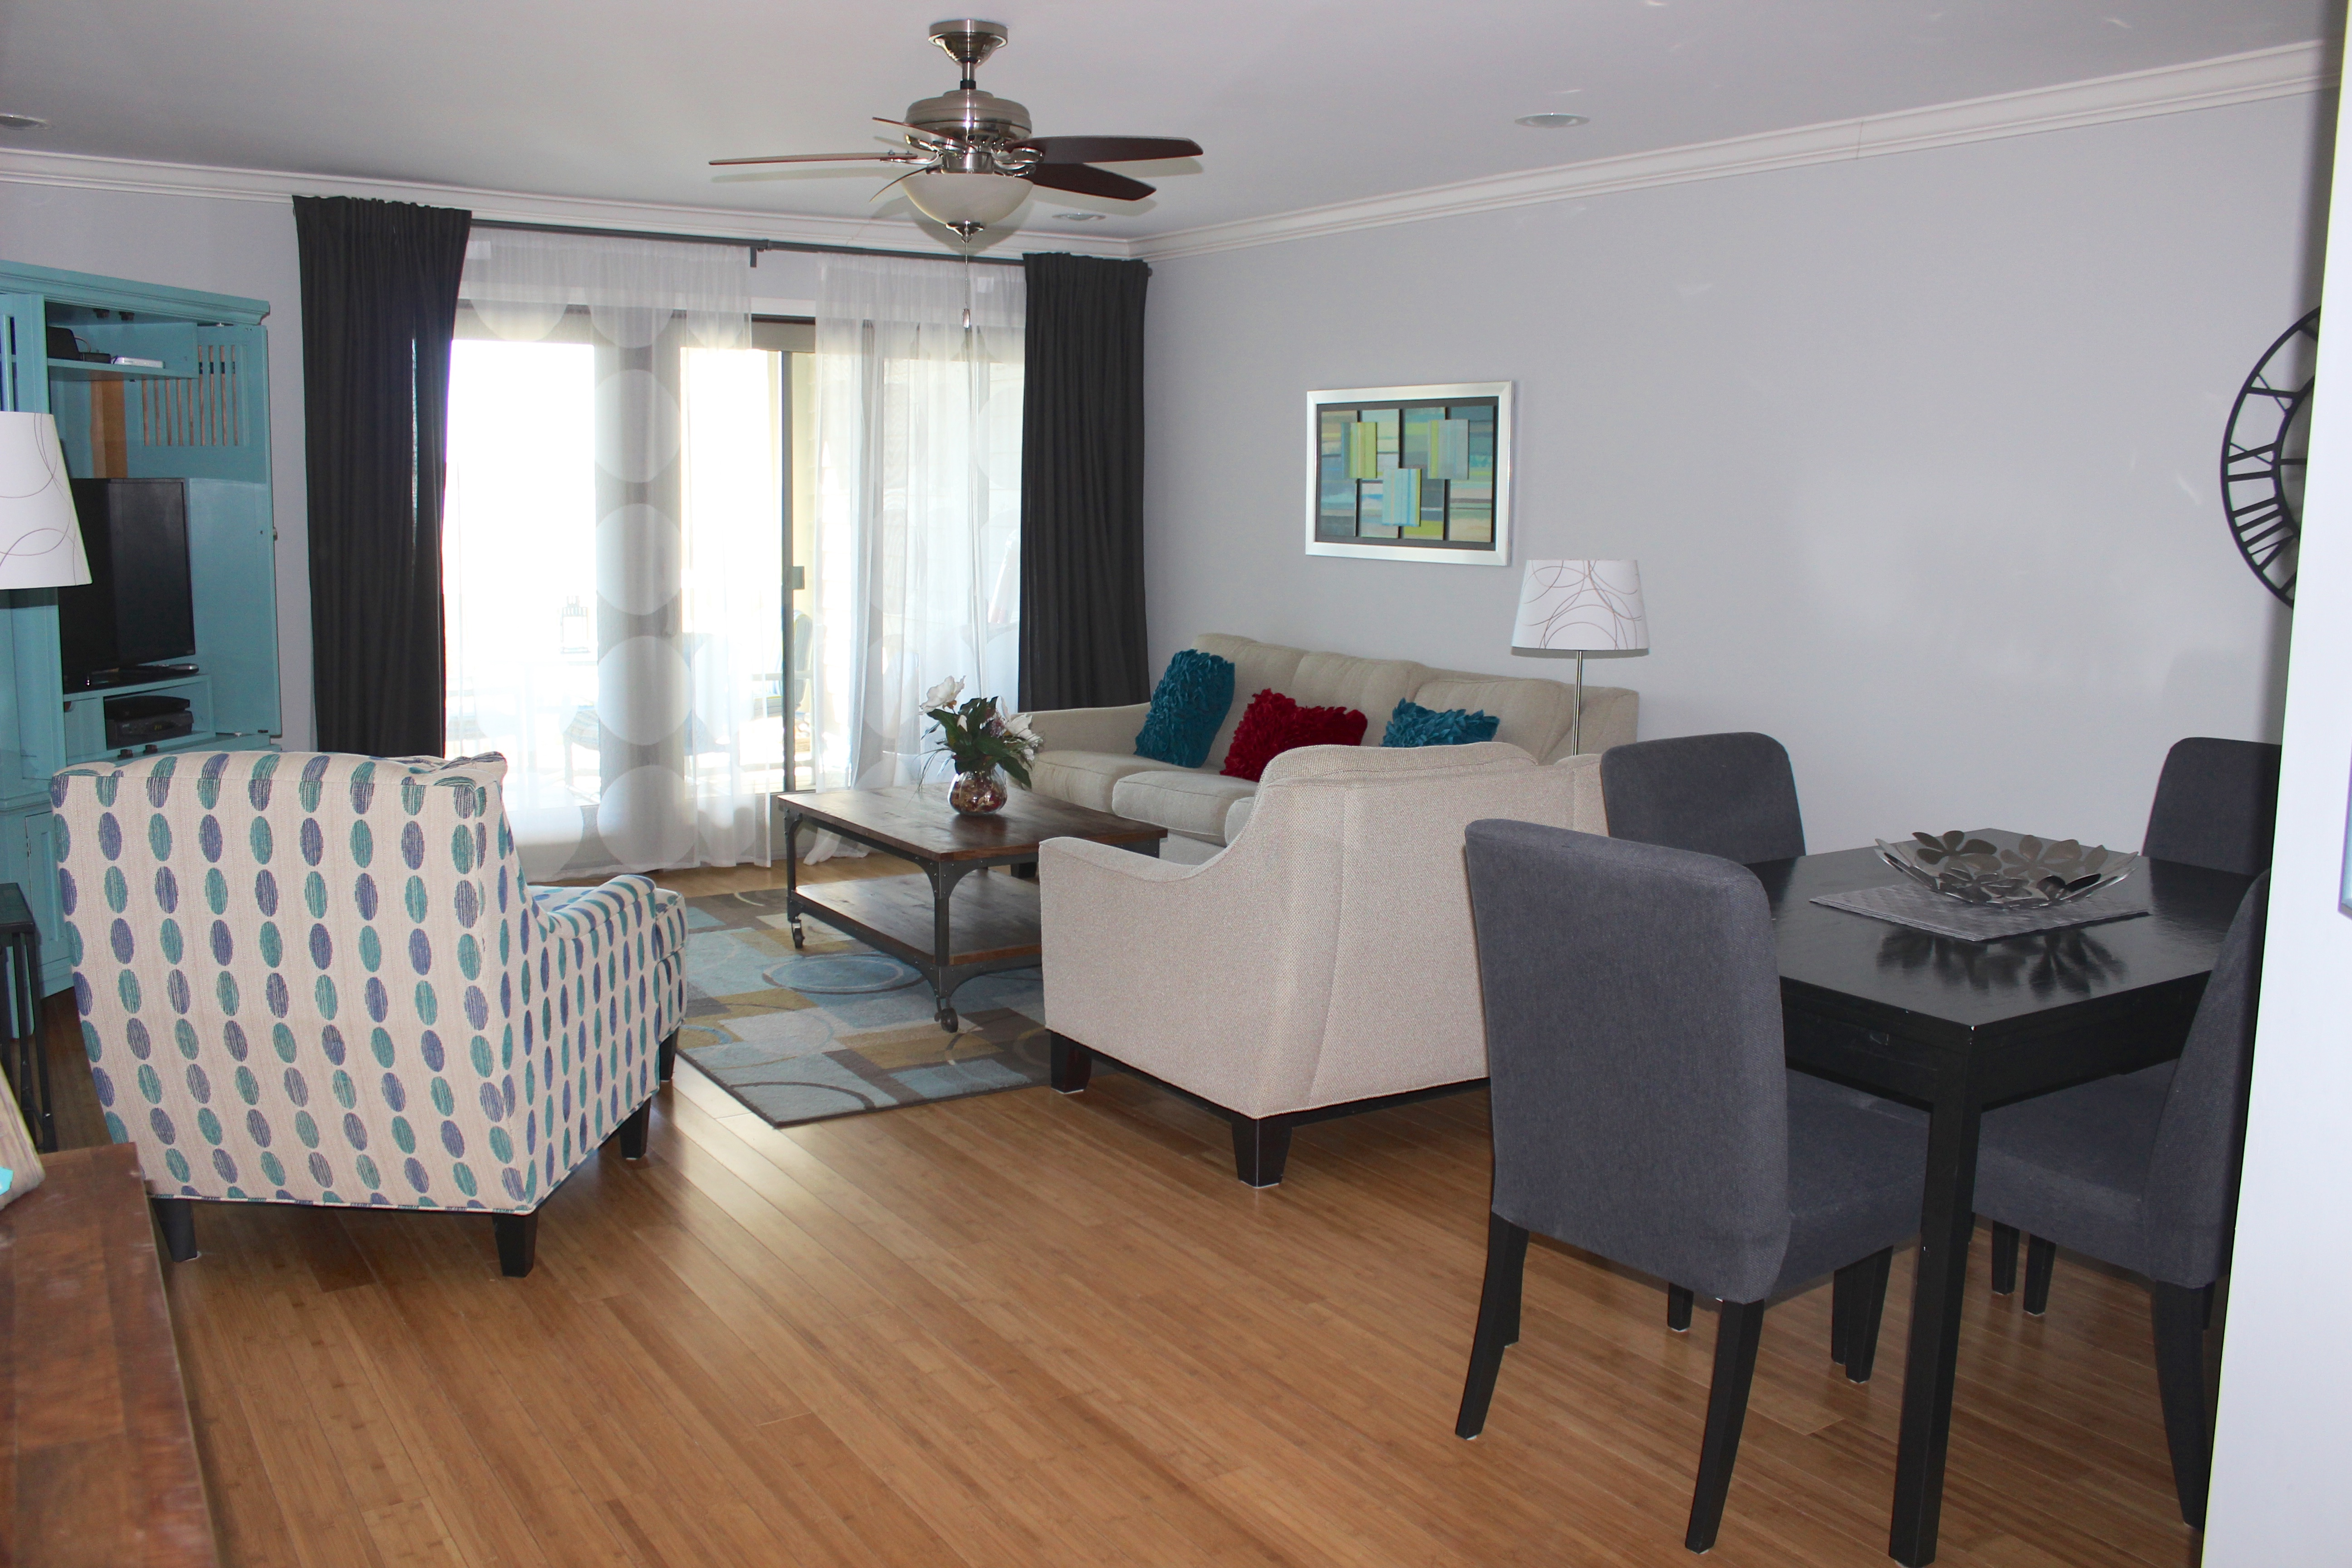 Features include bamboo floors & a soothing gray/aqua decor.